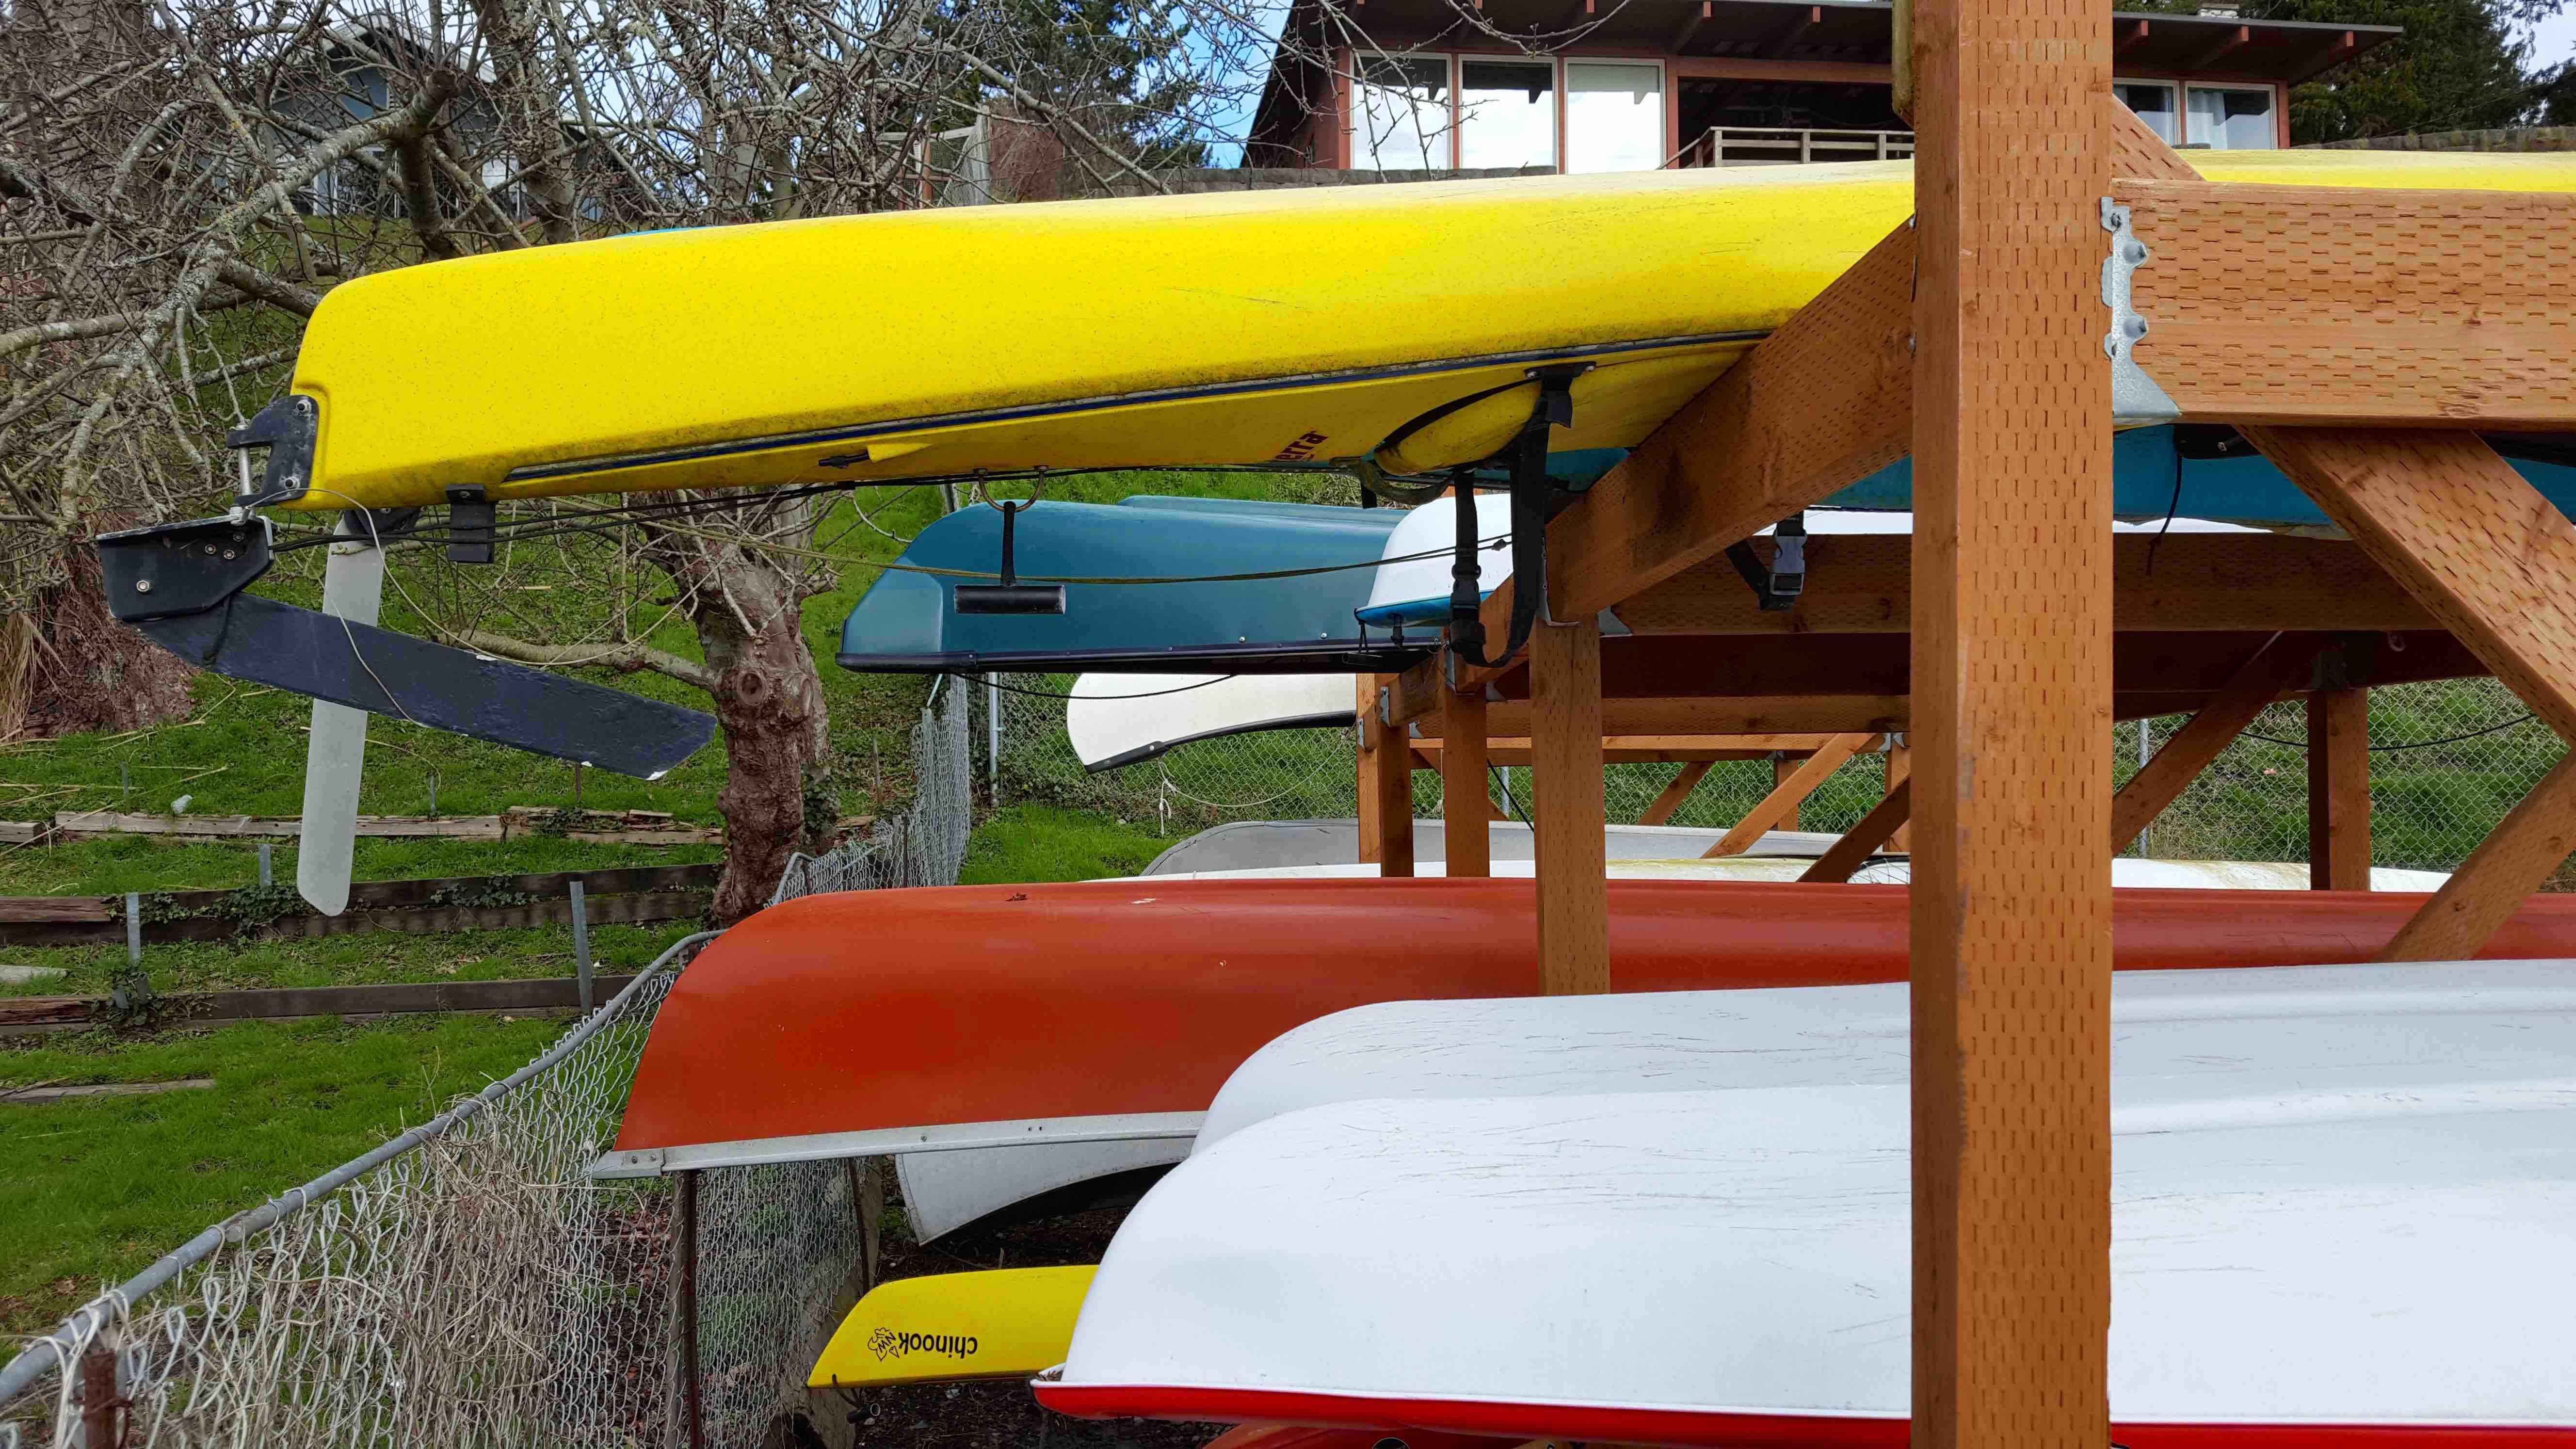 Boat Storage Rack Space Assignment Meeting March 19